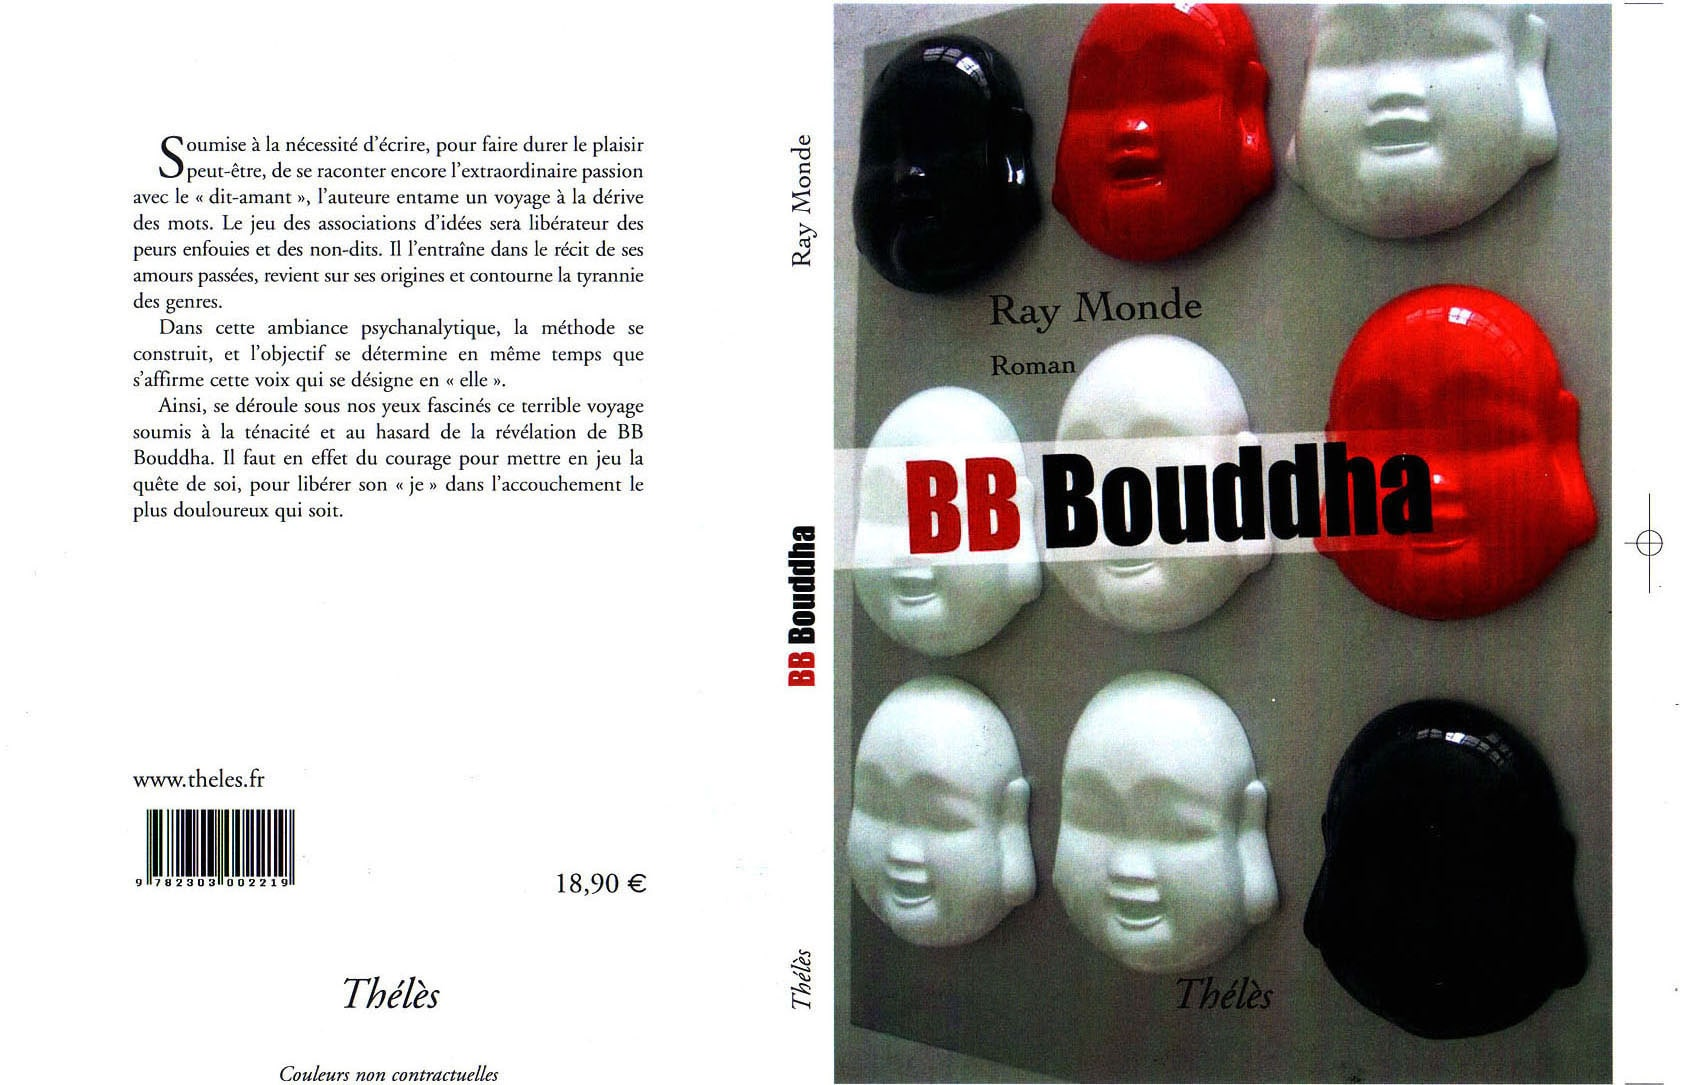 Book BB Bouddha